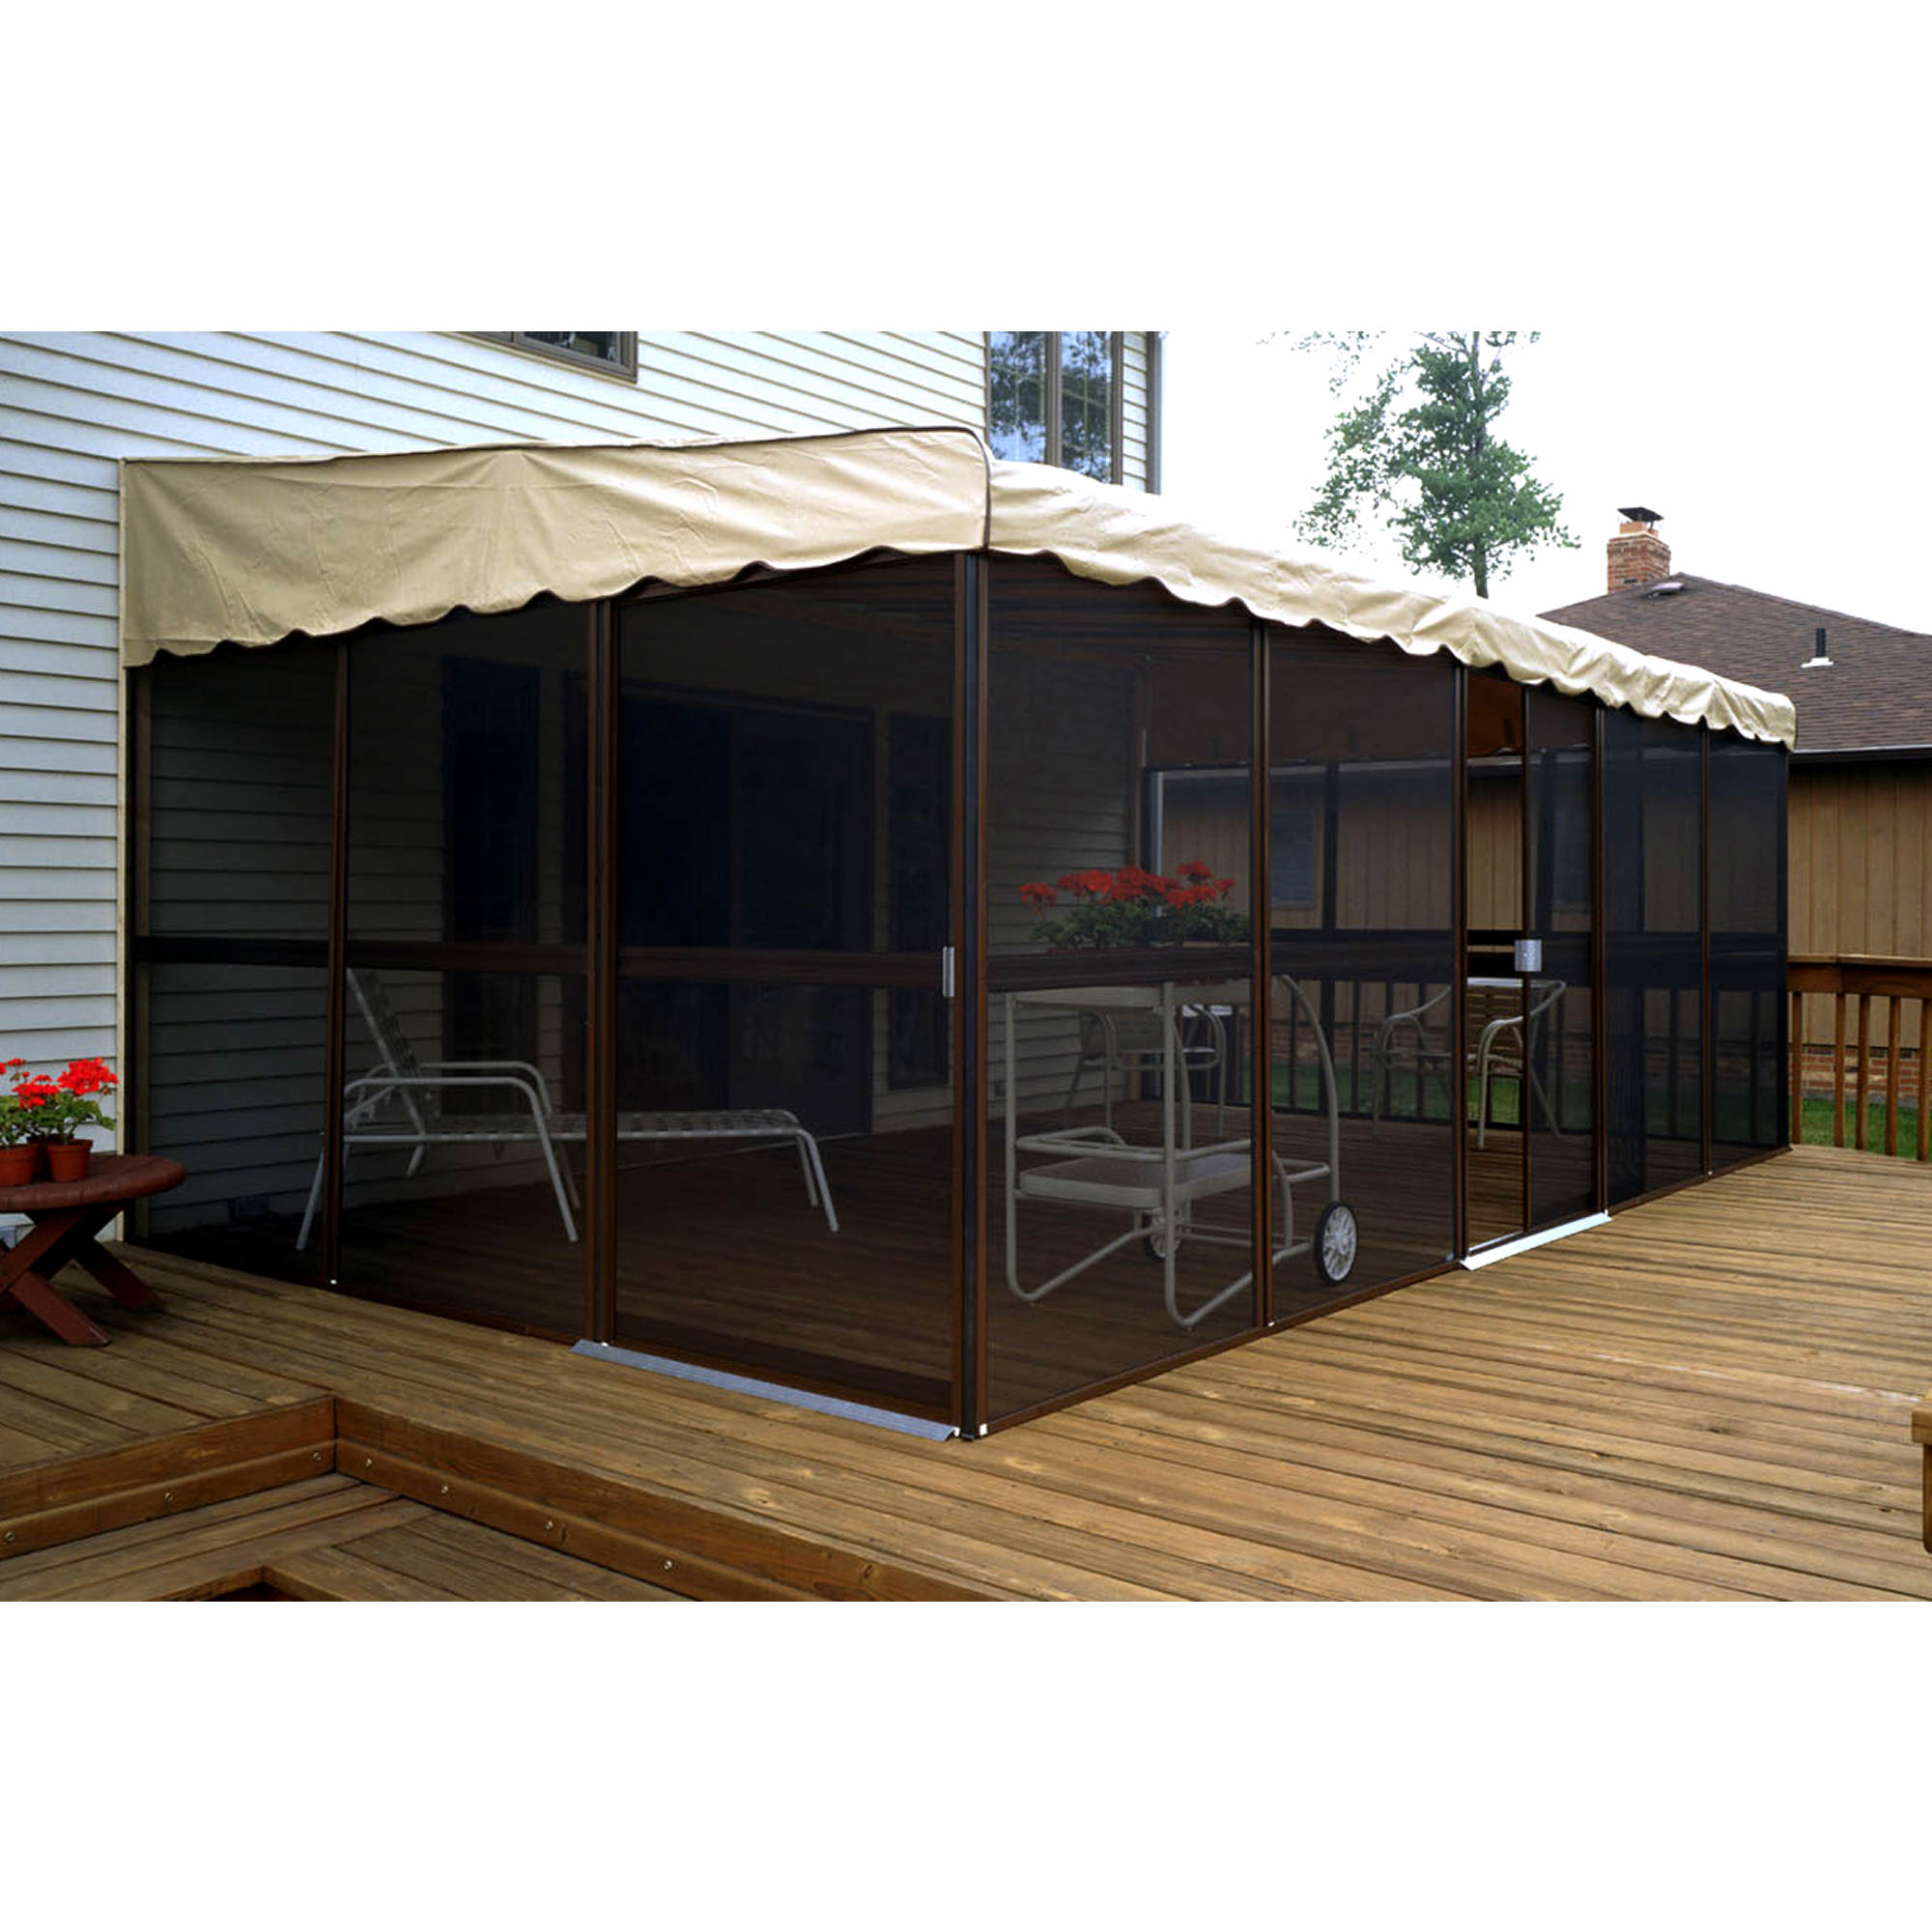 replacement lovable of full screen enclosure unique inspirational furniture canopy best provide outdoor size screens patio enclosures